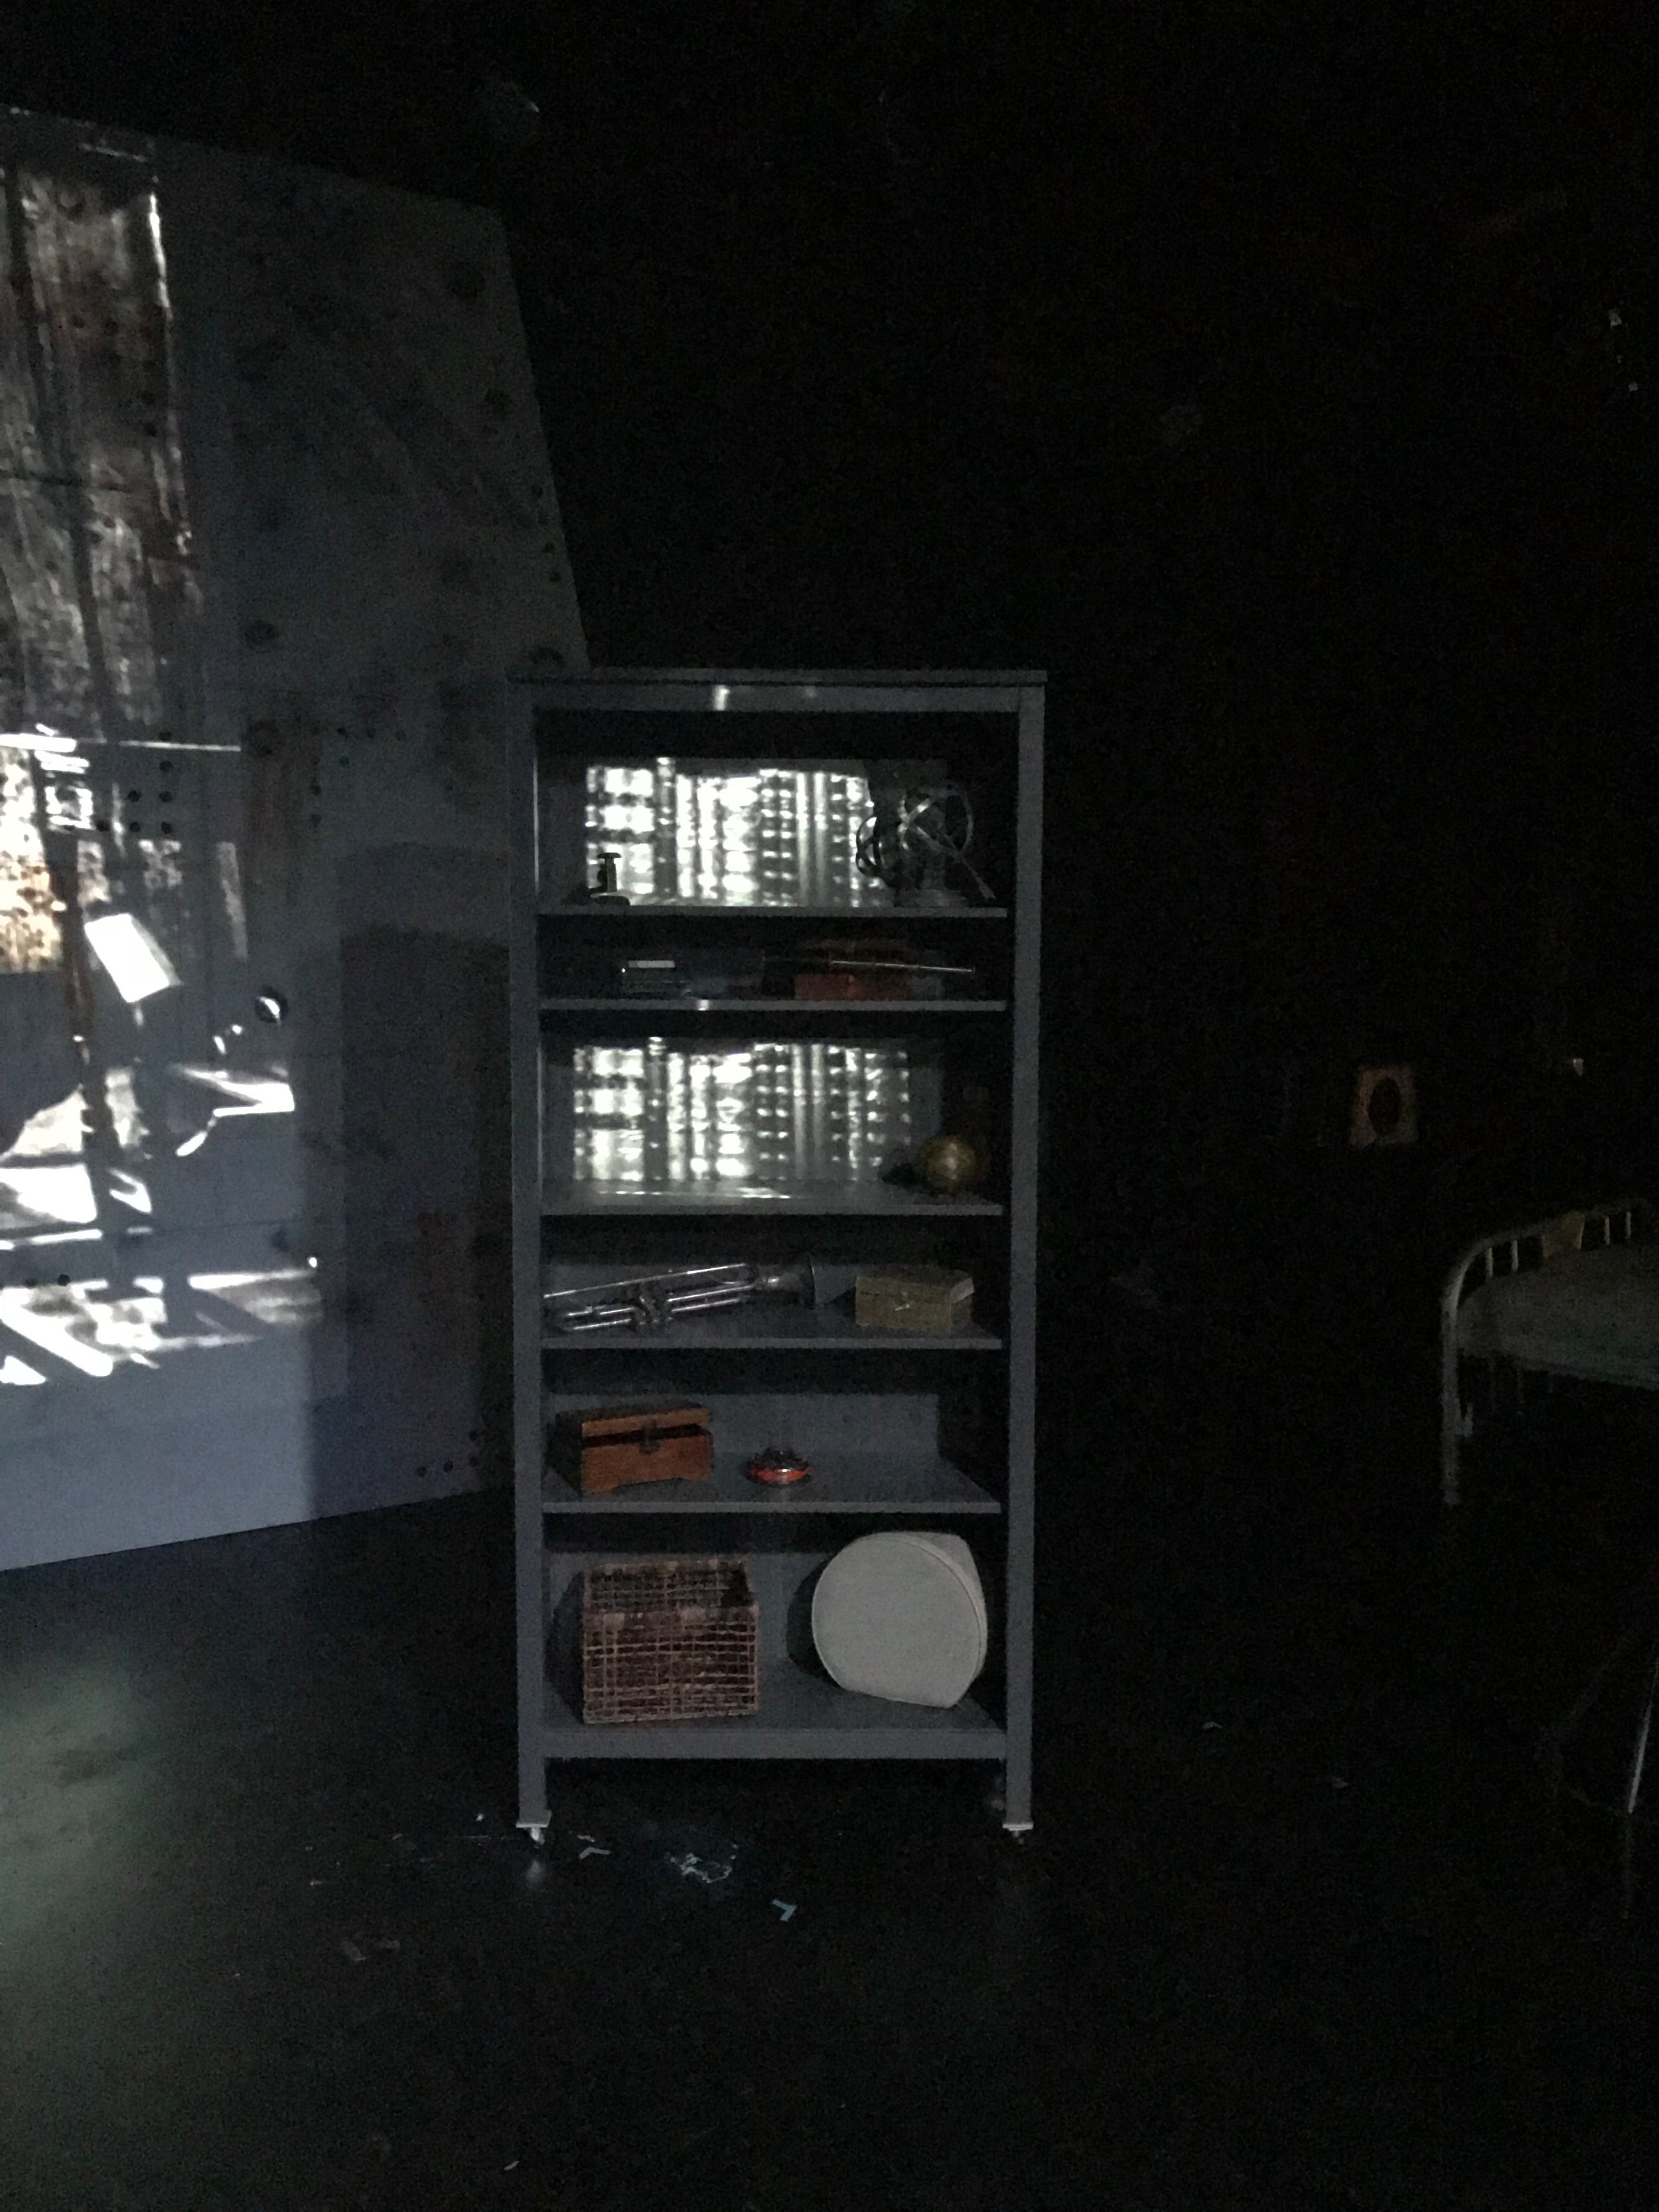 Particularly proud of this one. I was able to projection map books onto this bookshelf to collaborate with the set designer.